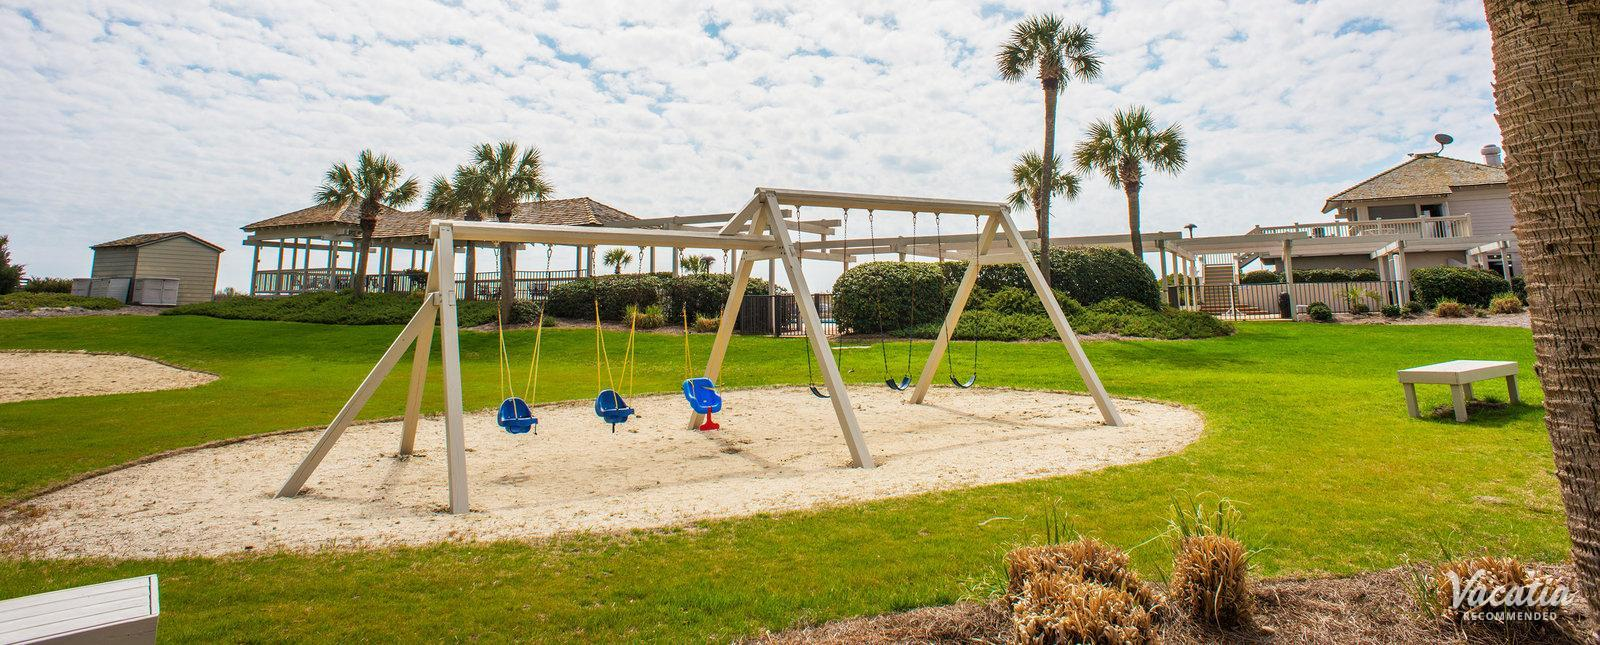 Ocean Creek Resort kids playground area